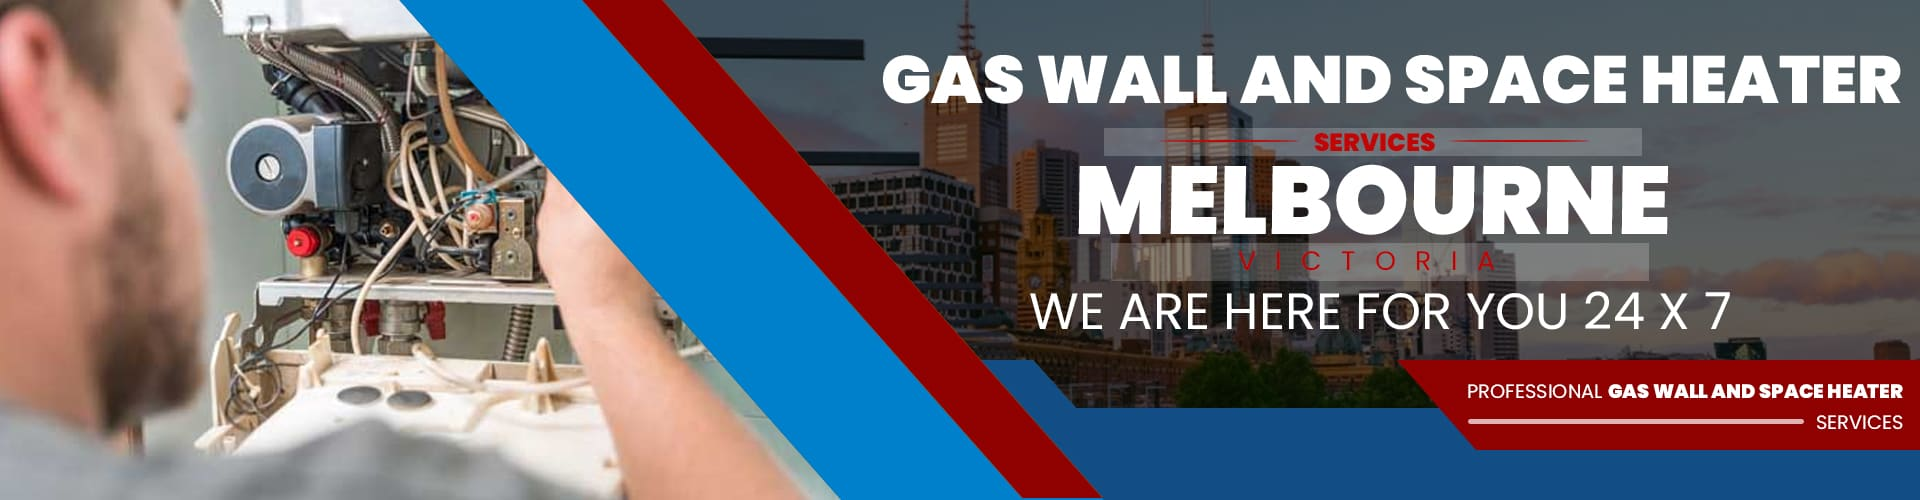 Gas Wall And Space Heater Service Melbourne